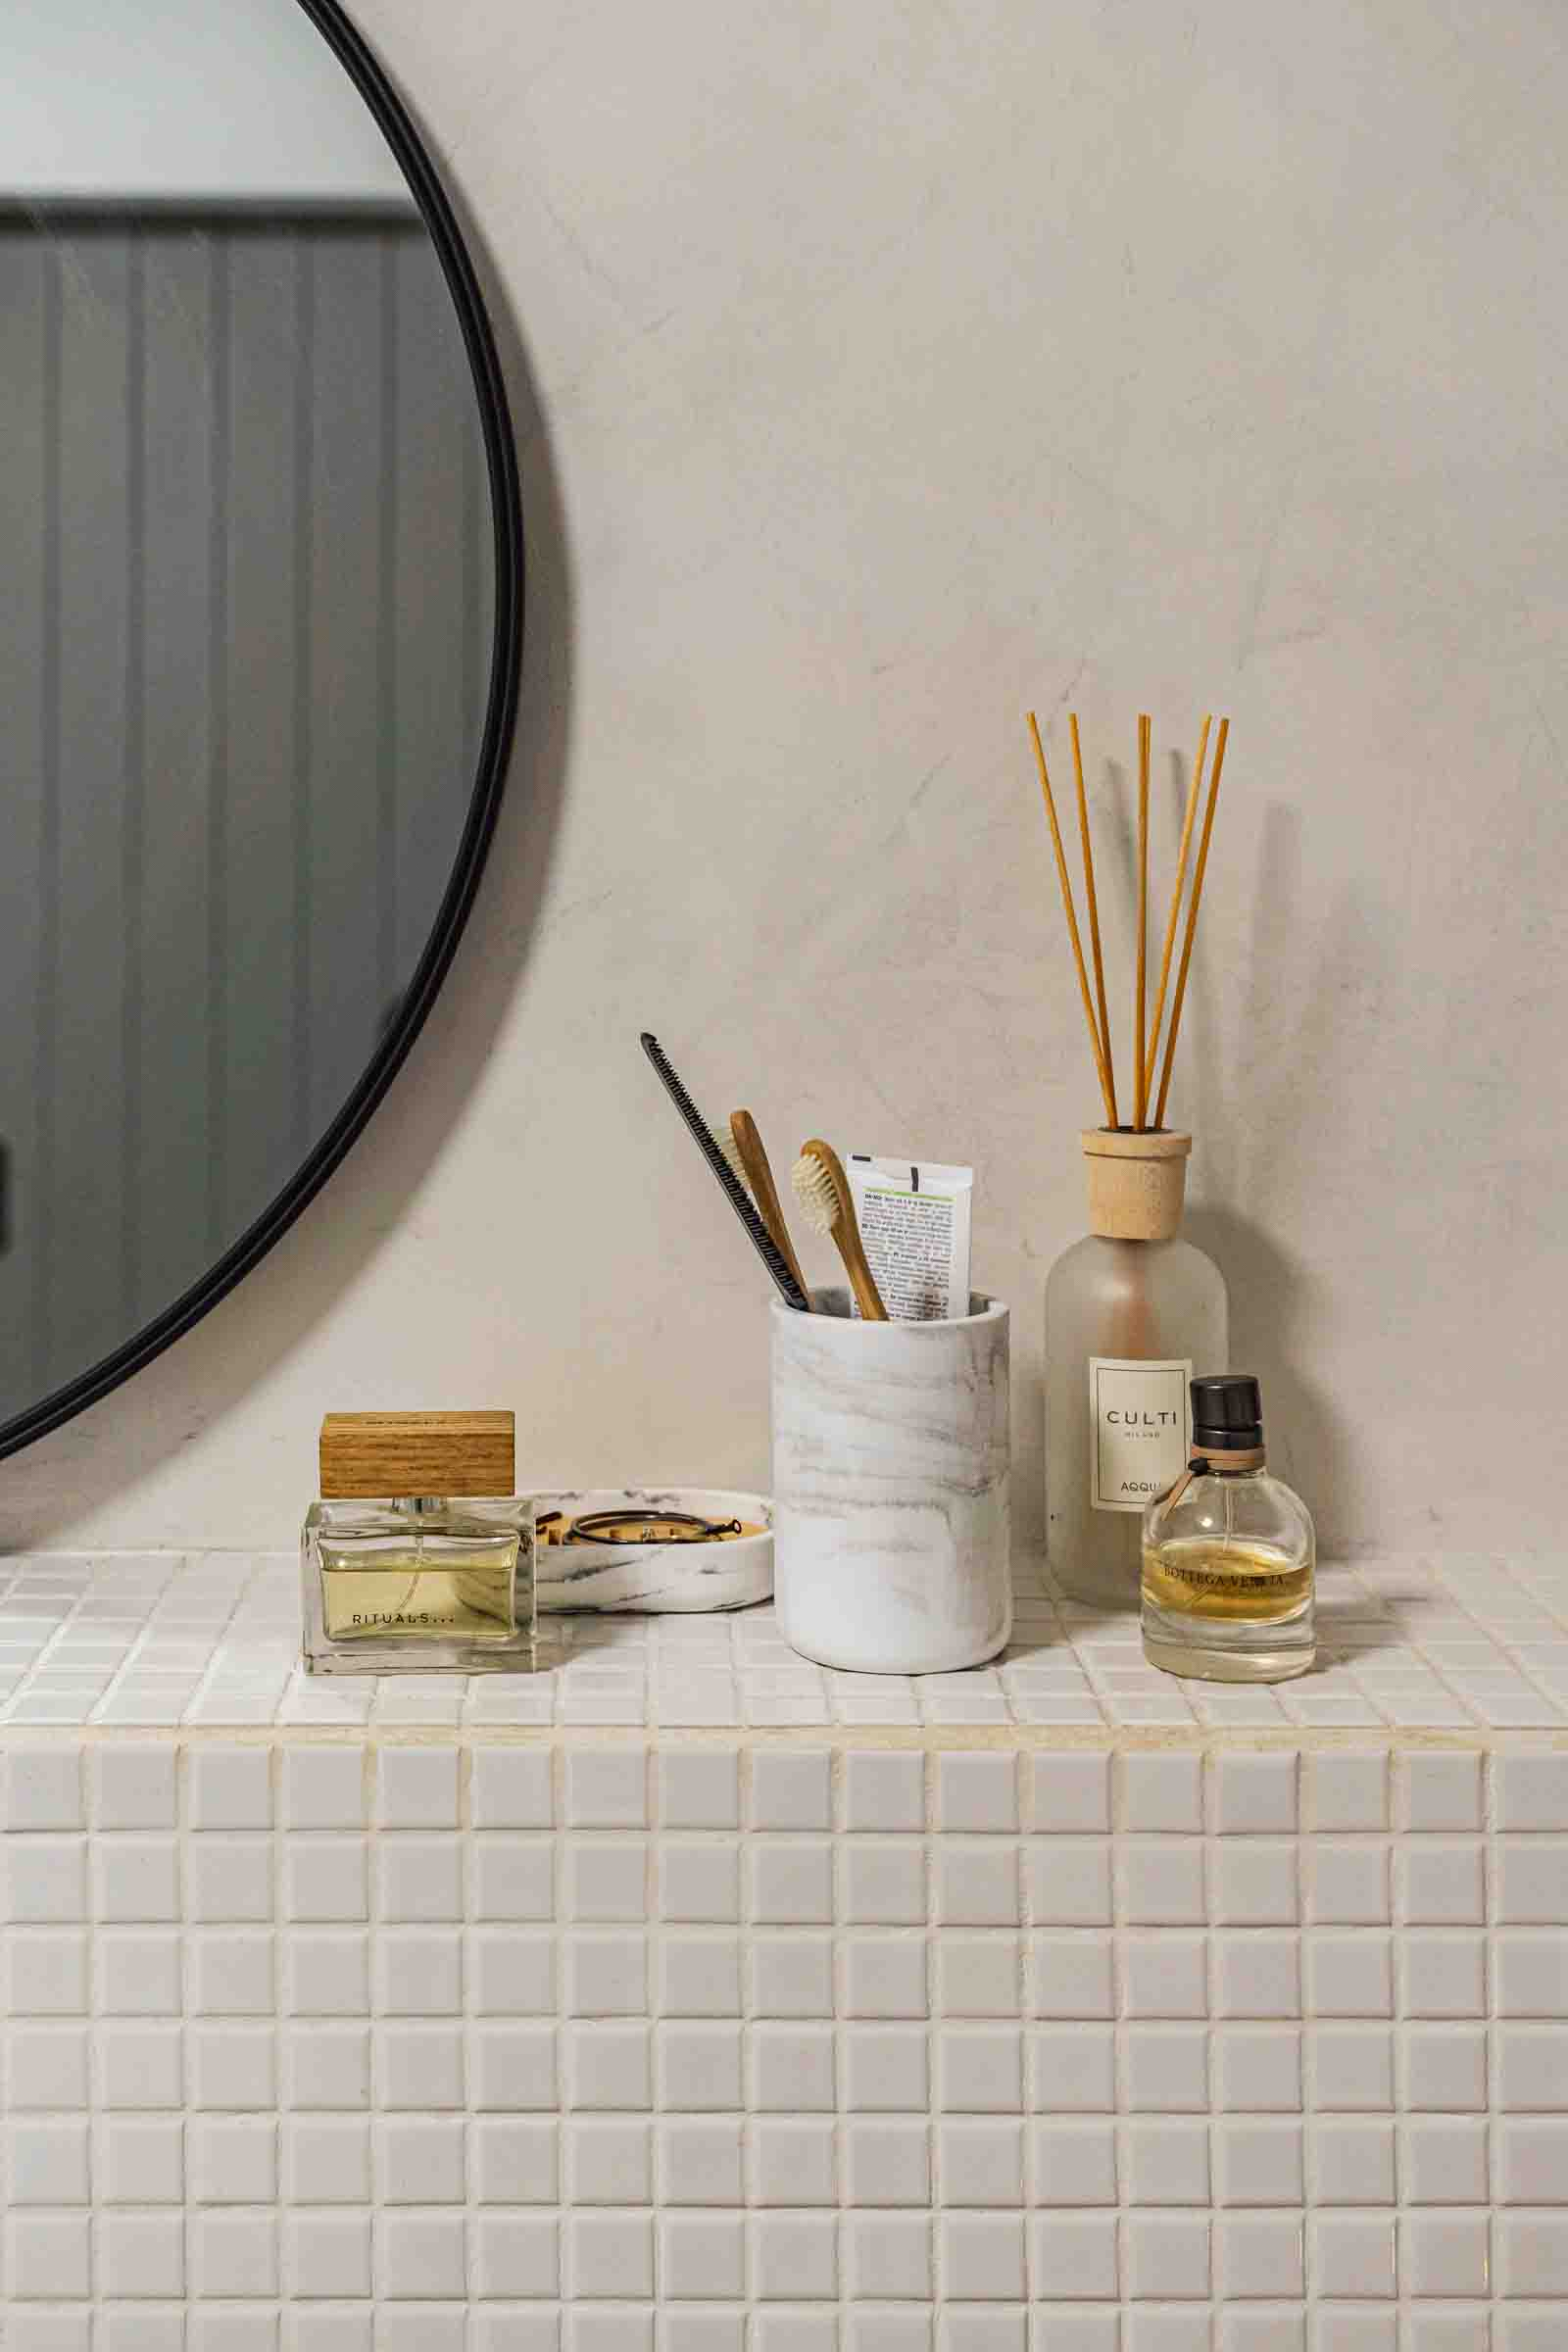 White tiled ledge in bathroom with toiletries